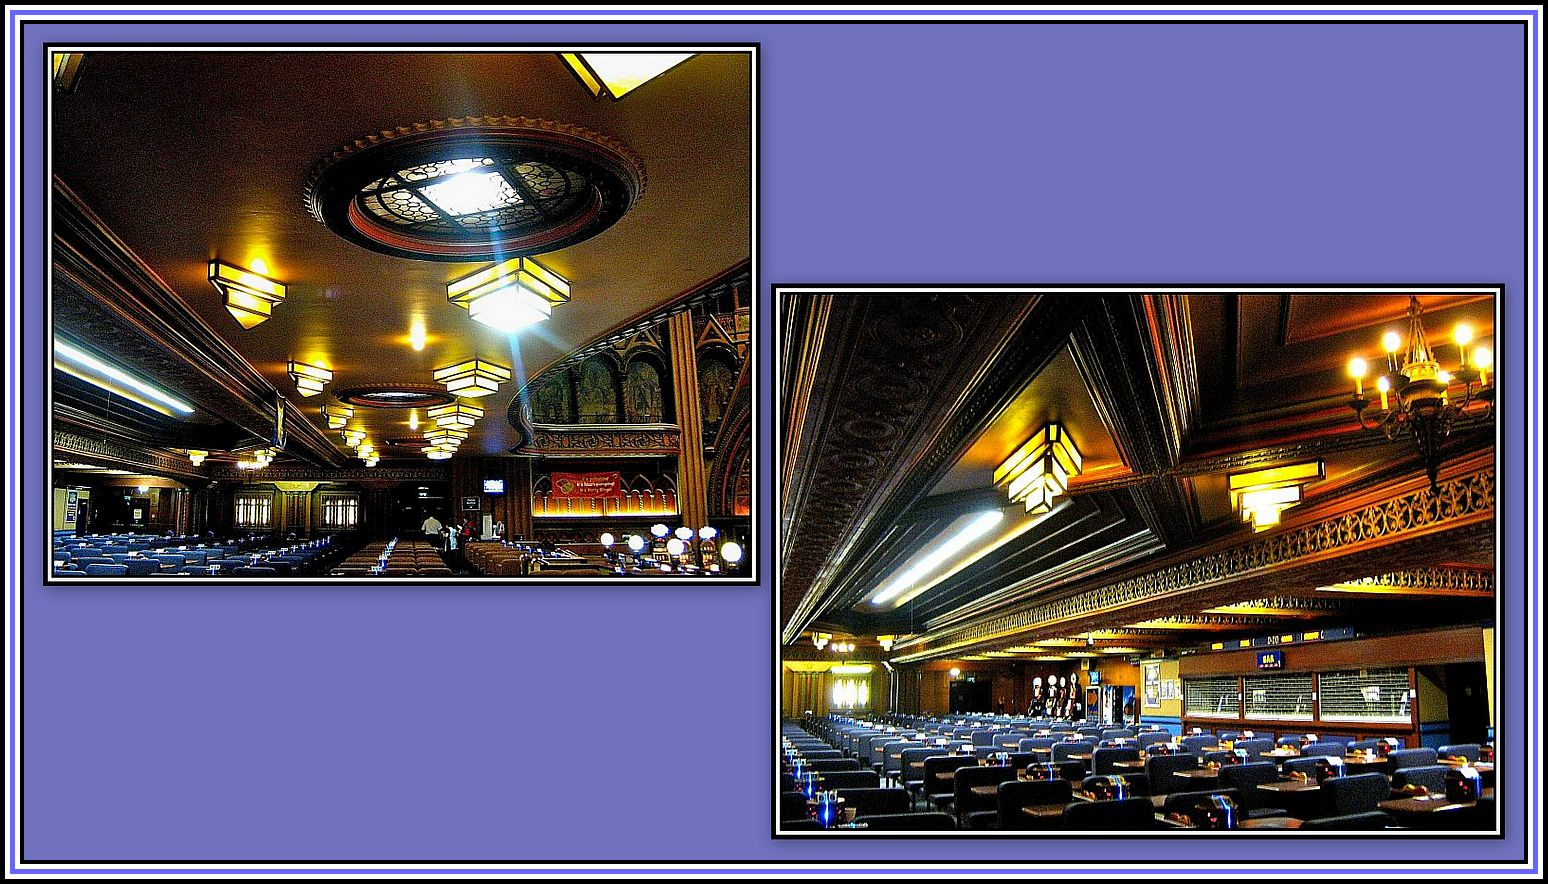 Lamps under the Circle Collage - 2